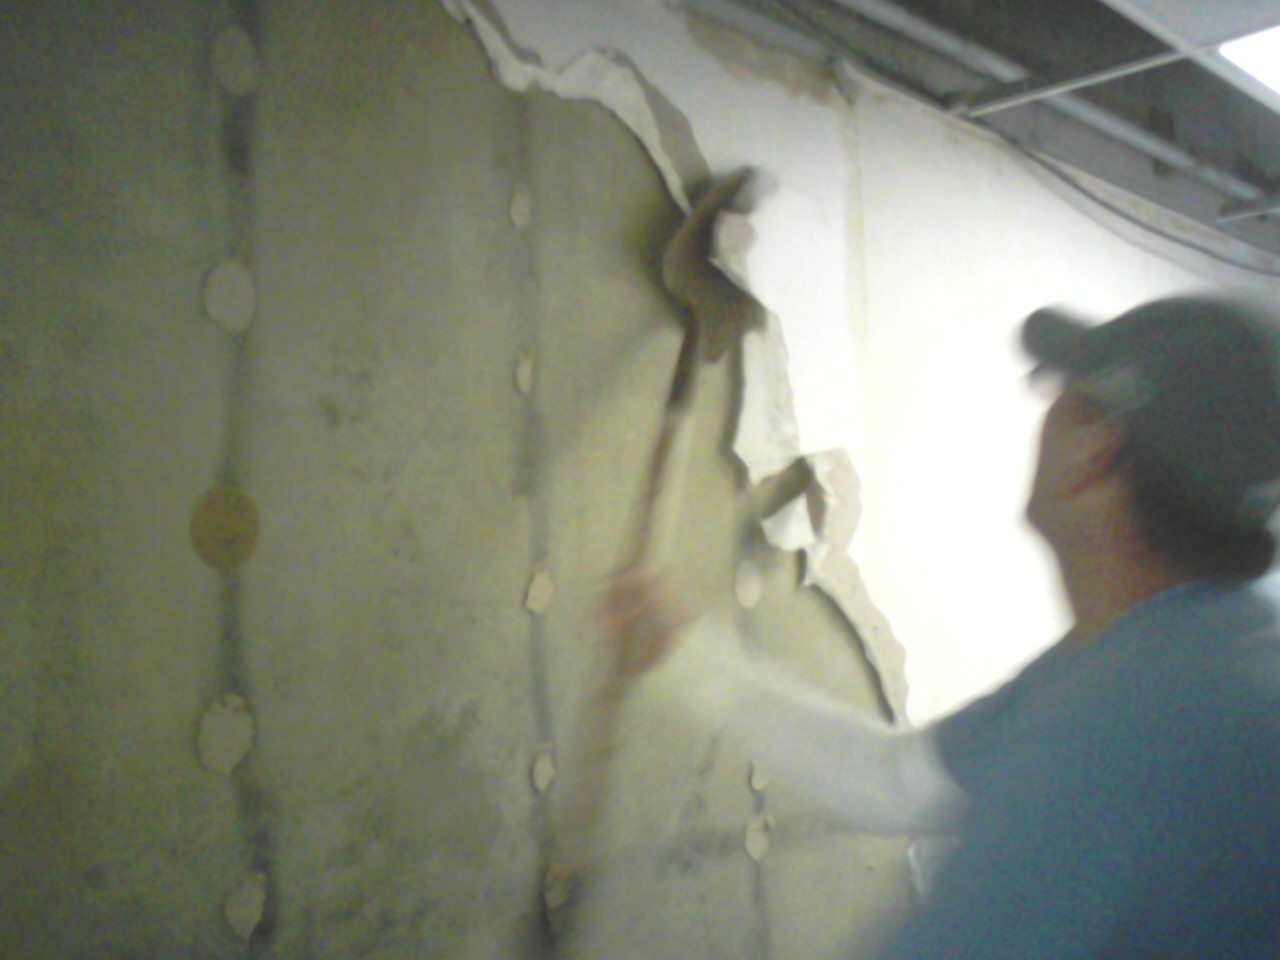 Drywall To Cinder Block Drywall Contractor Talk